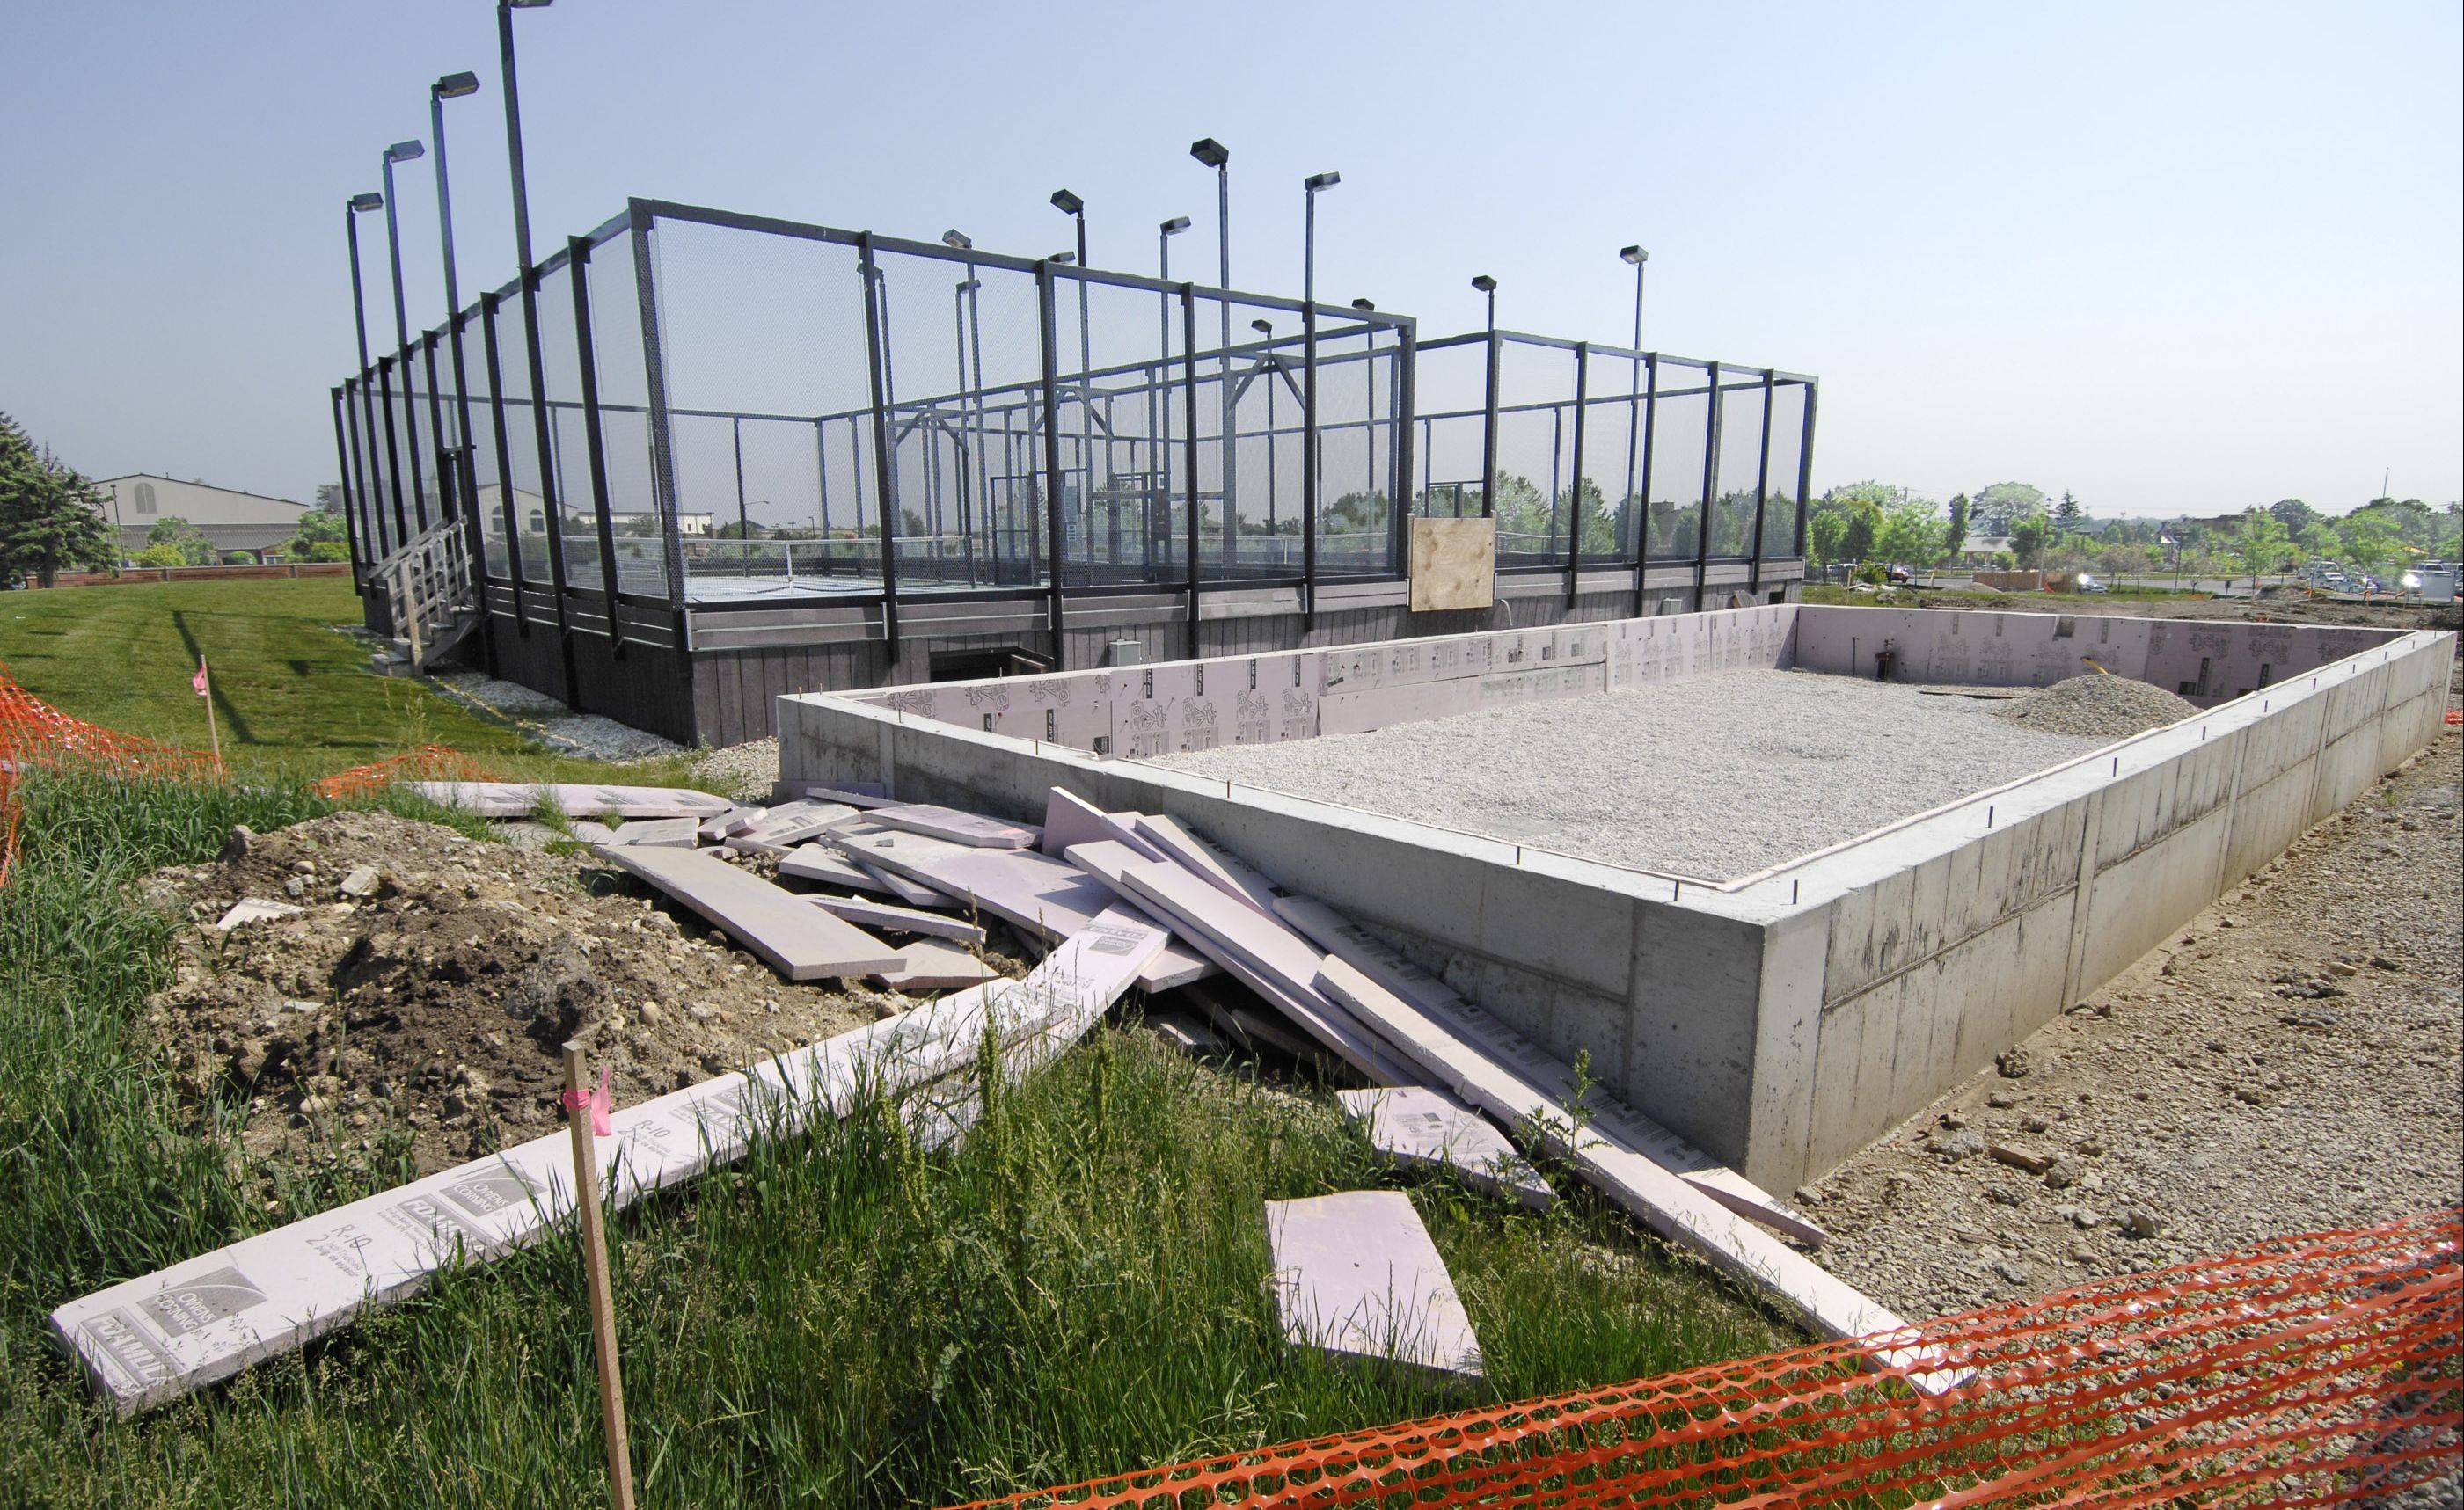 Construction of a platform tennis warming hut at Maryknoll Park is expected to restart after the Glen Ellyn Park District board voted Tuesday to lift suspension of the work.